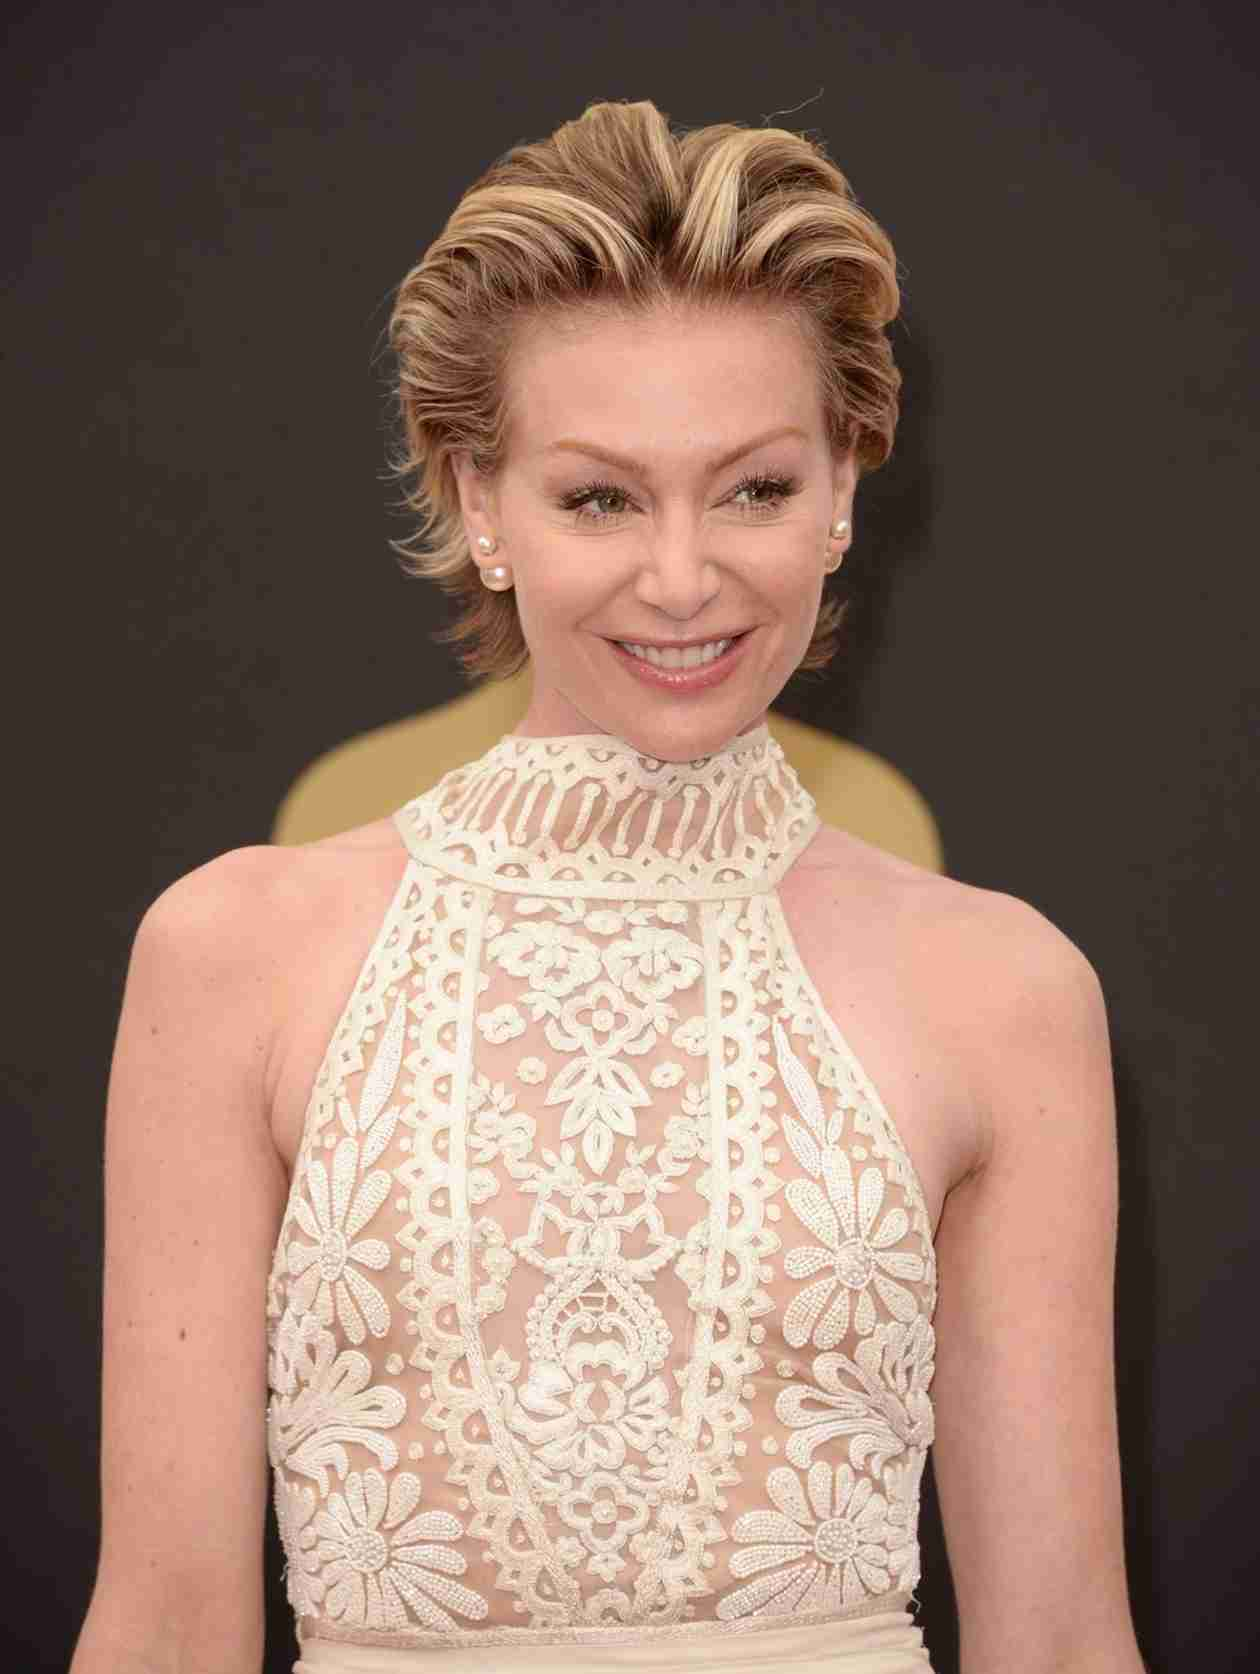 Dream Casting Frozen's Elsa for Once Upon a Time